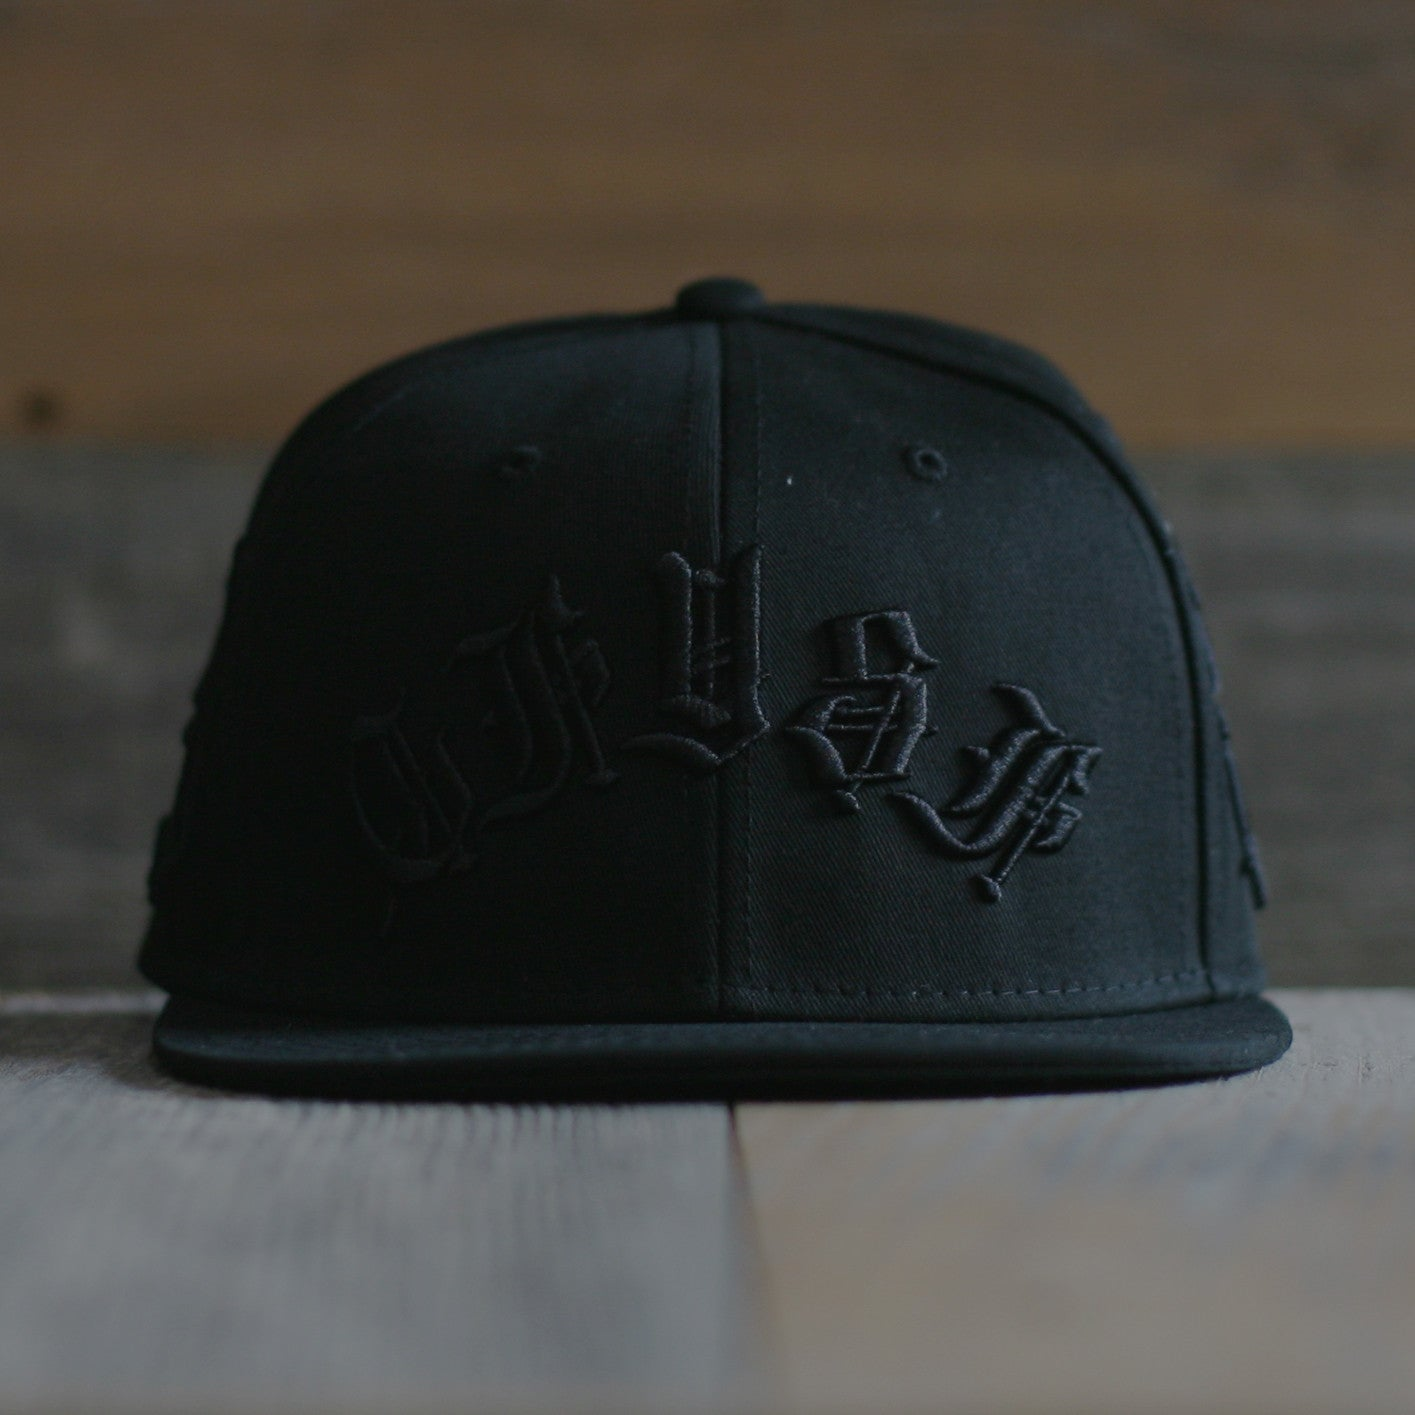 Blasted Snapback Hat Stealth